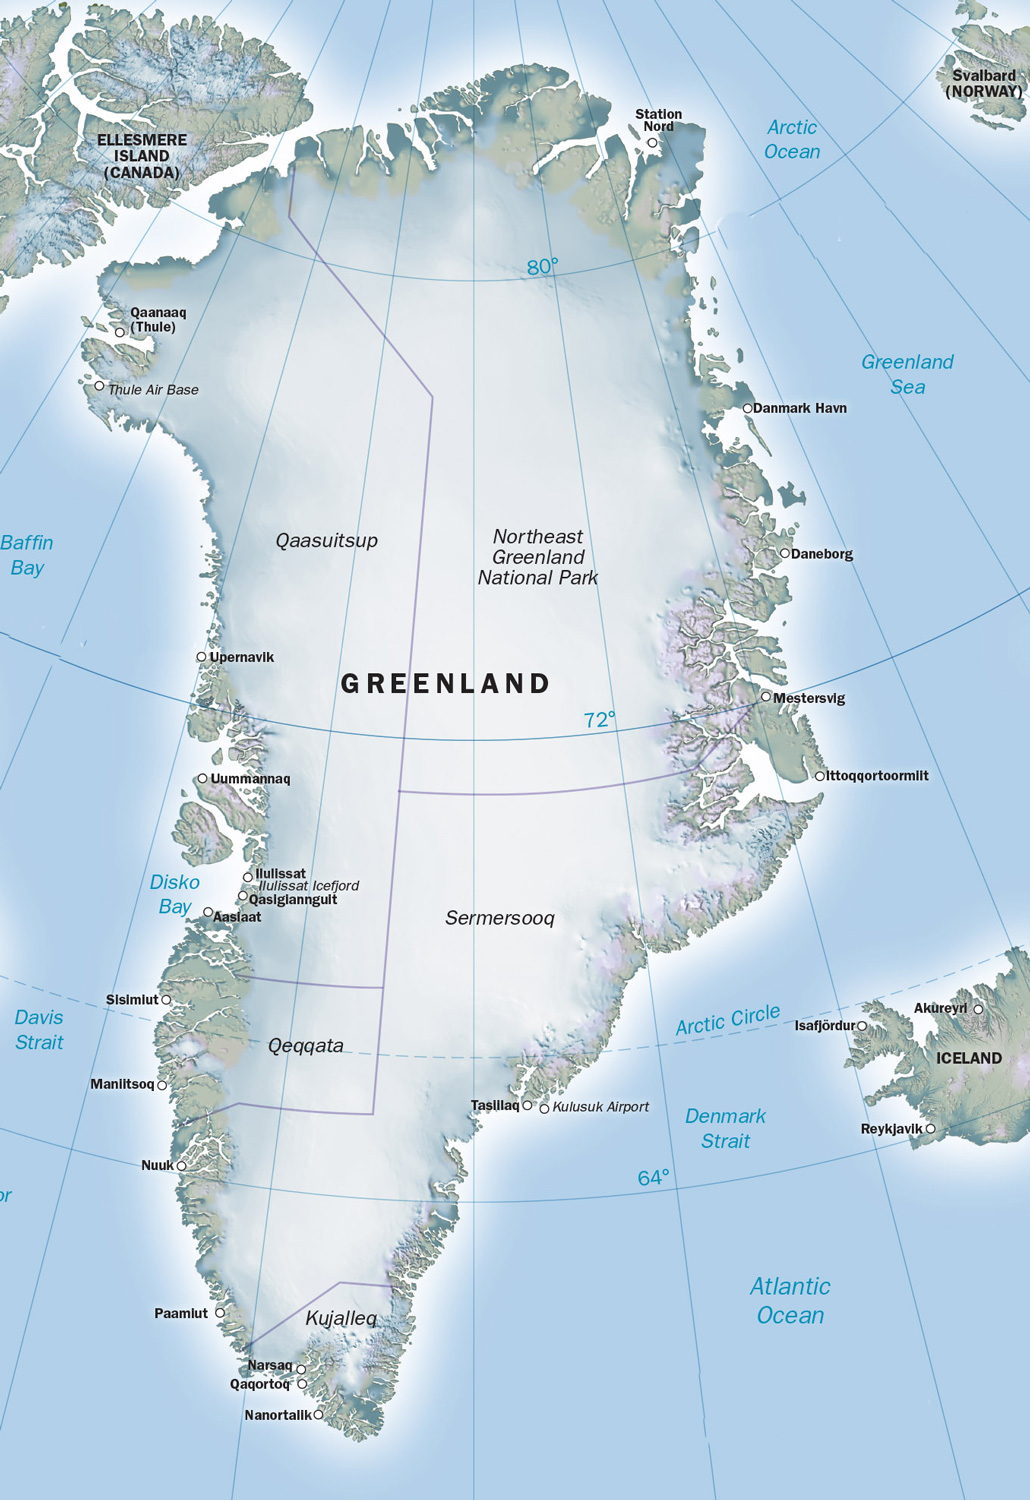 Greenland with Tasillaq marked on the south-east coast. (Click on map for larger image)